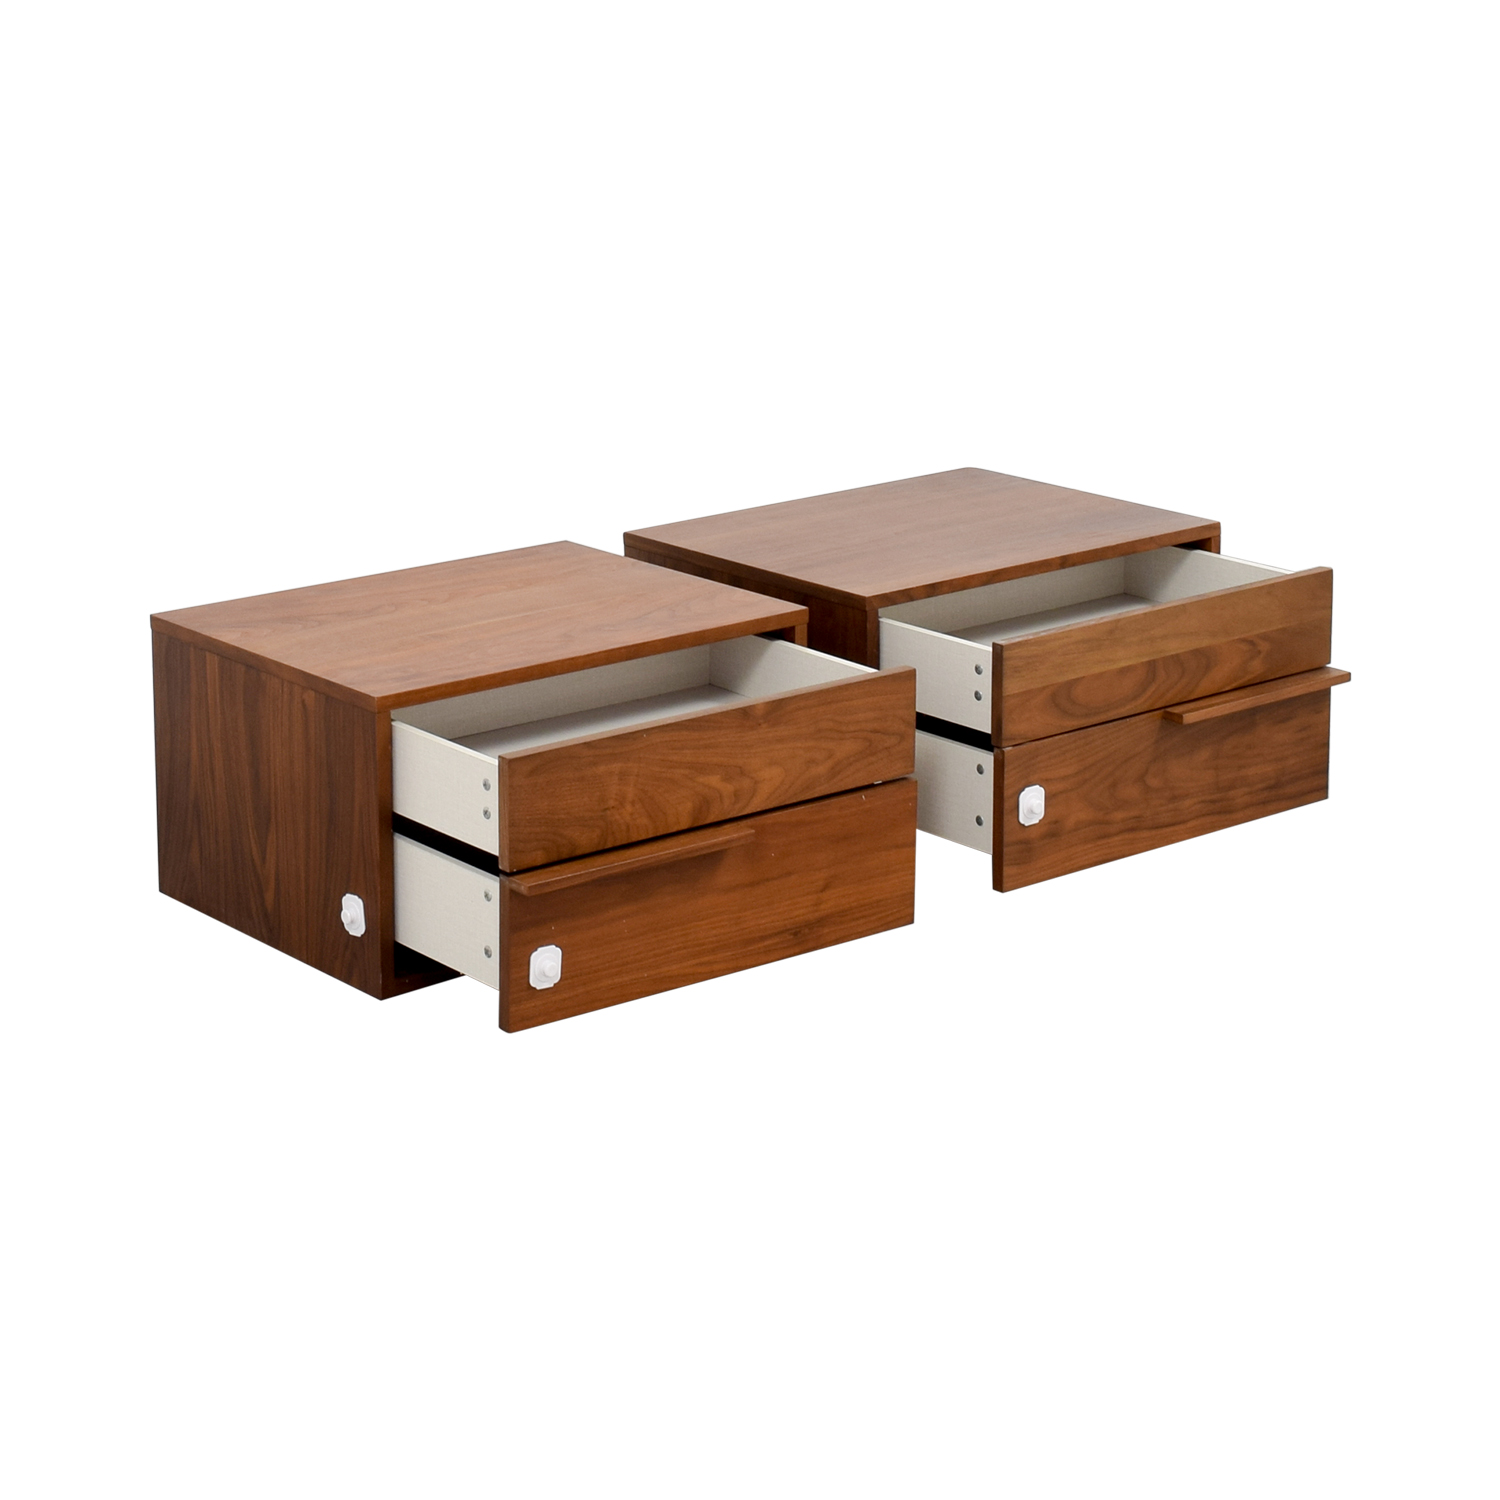 shop Modloft Jane Two-Drawer Nightstands Modloft